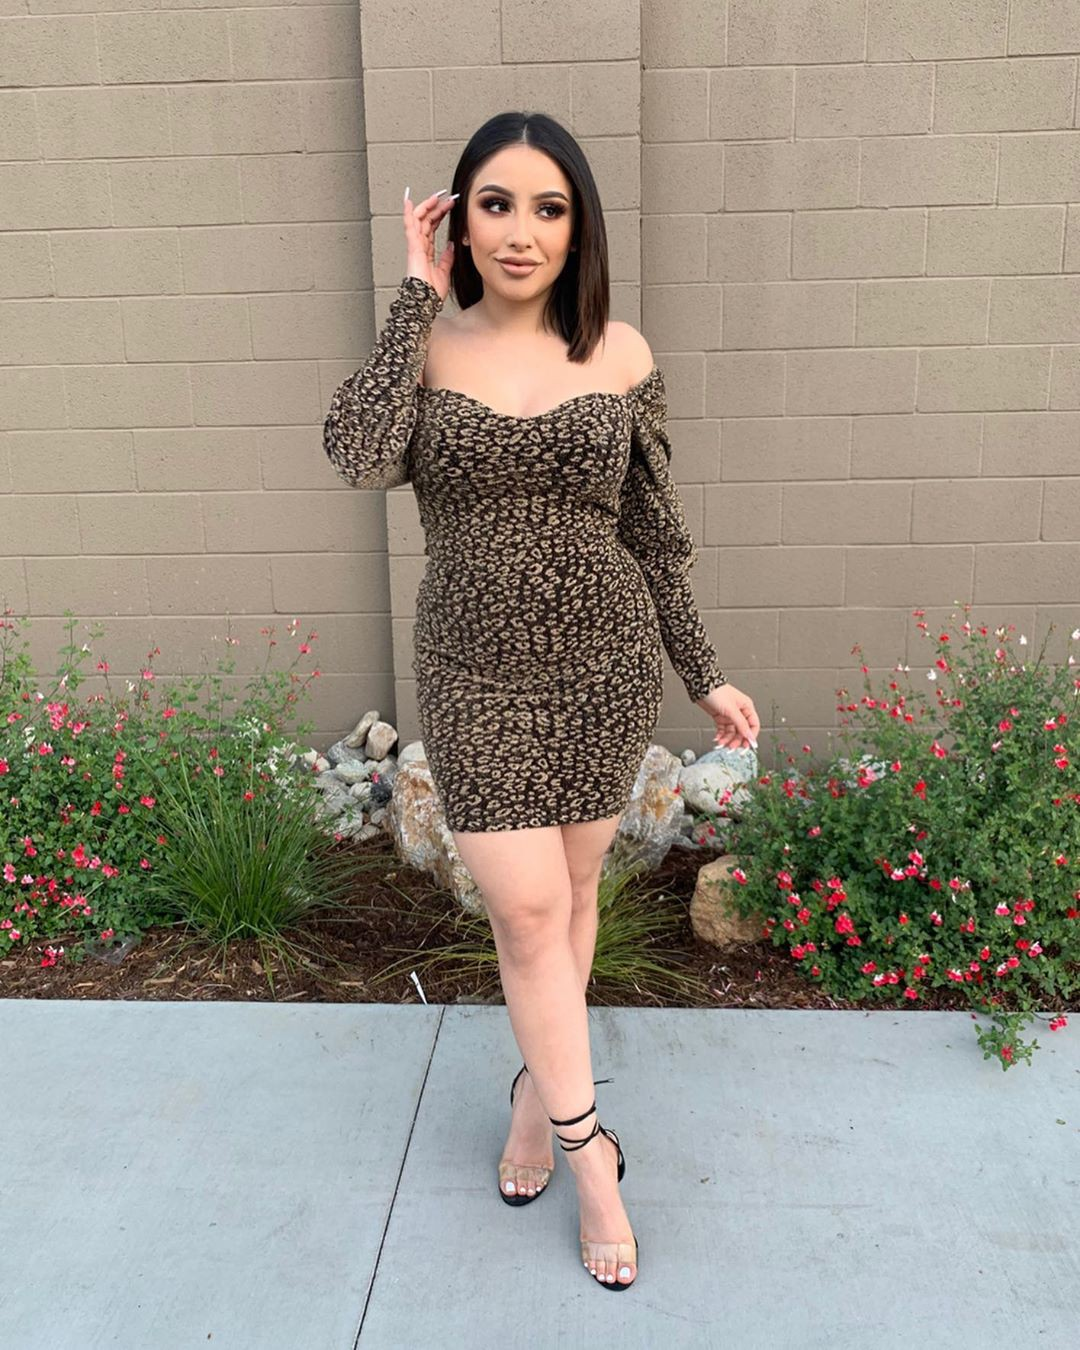 Erika Rodriguez cocktail dress outfits for girls, fine legs